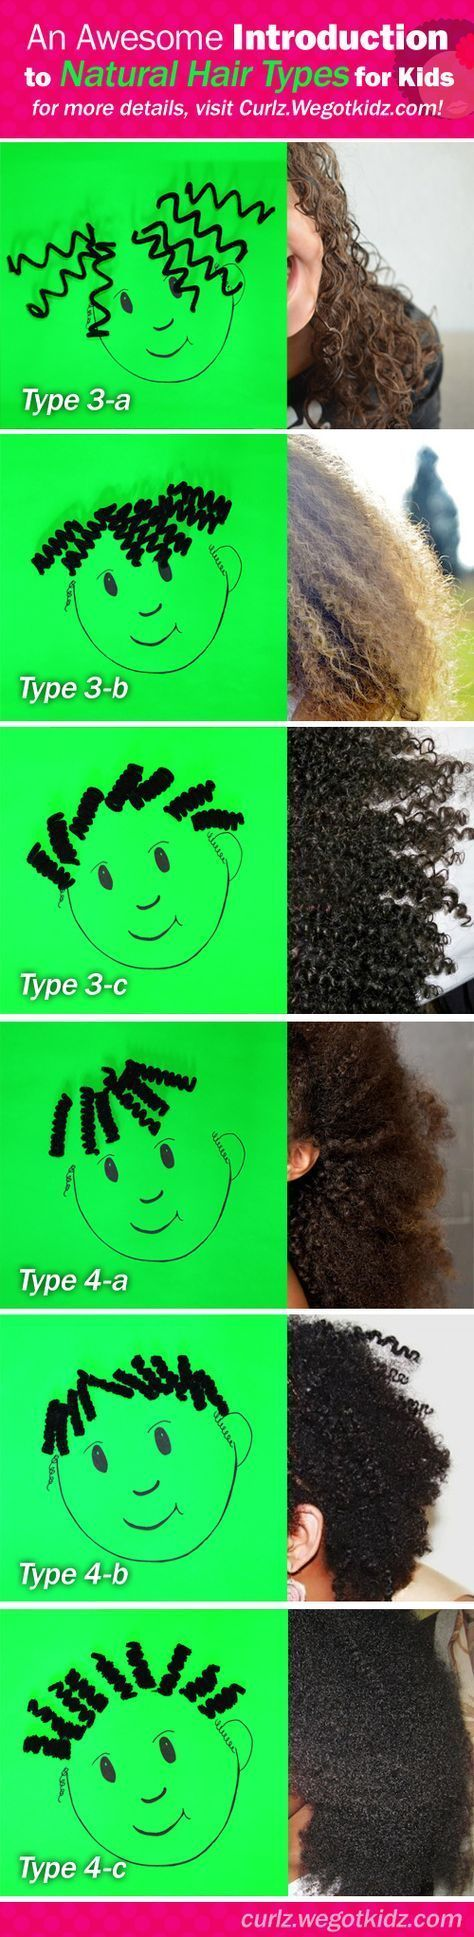 Hereus a great introduction to the hair typing system naturalhair